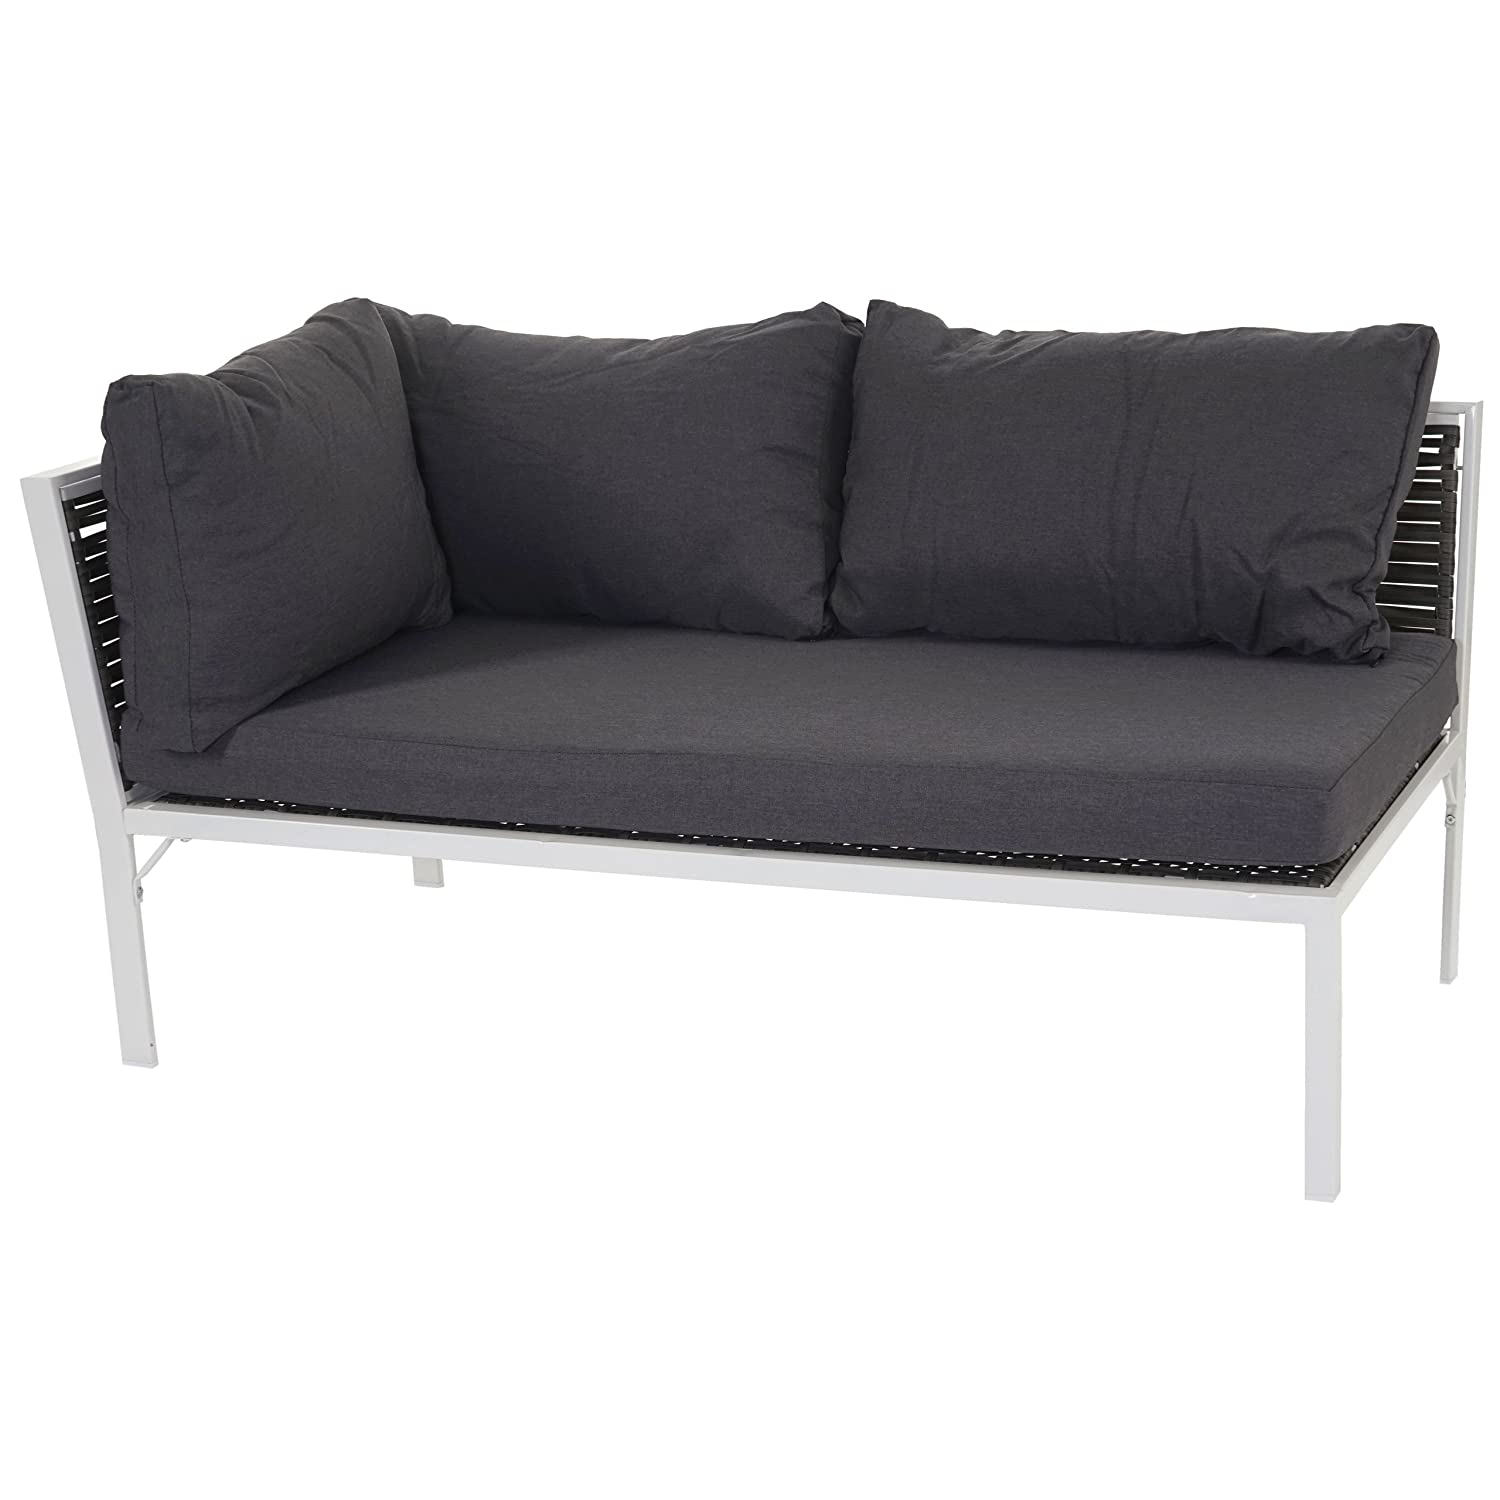 poly rattan sofa delphi 2er ecksofa alu kissen anthrazit links g nstig. Black Bedroom Furniture Sets. Home Design Ideas